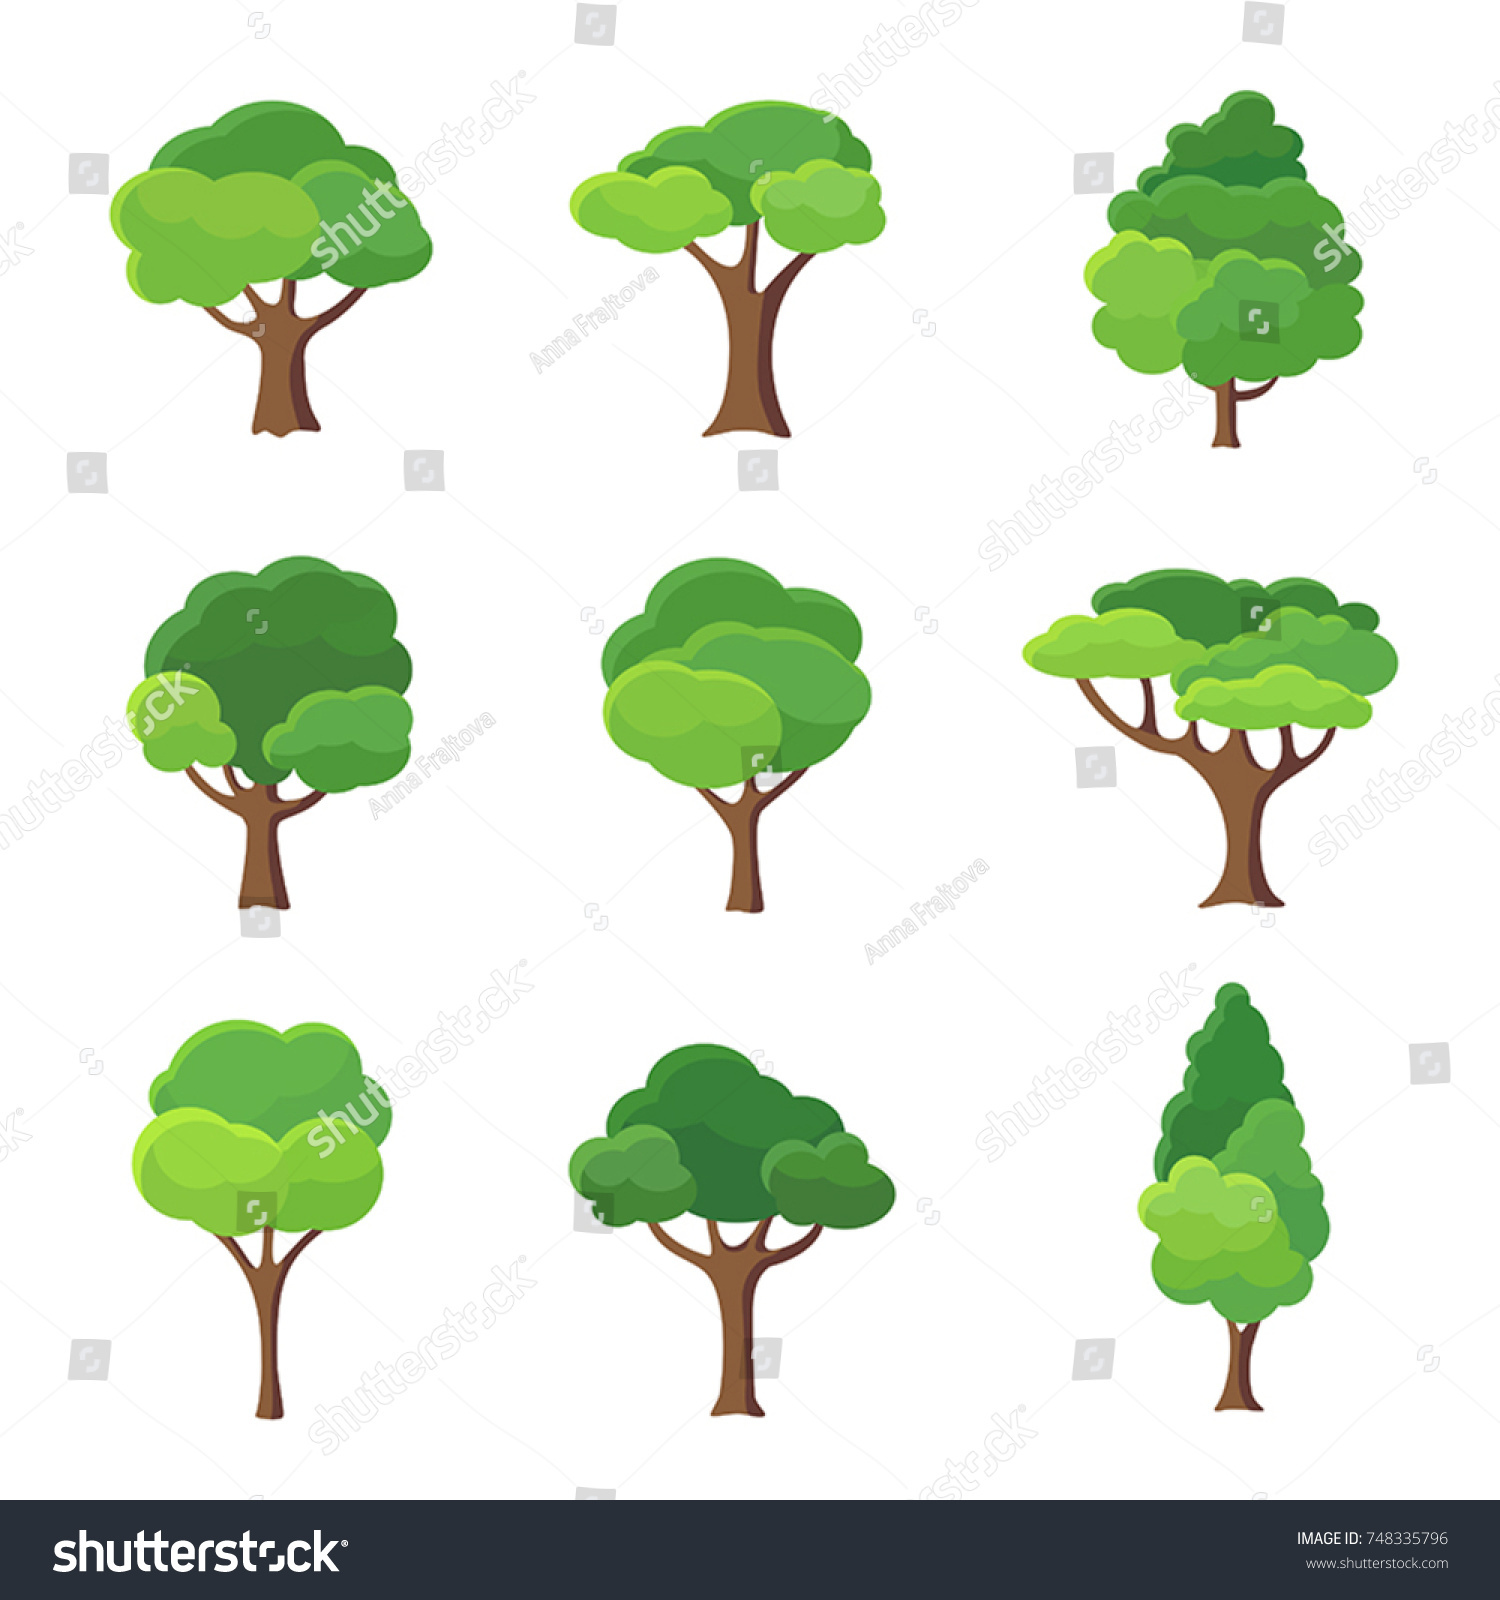 Collection of trees illustrations. Can be used to illustrate any nature or healthy lifestyle topic. #748335796